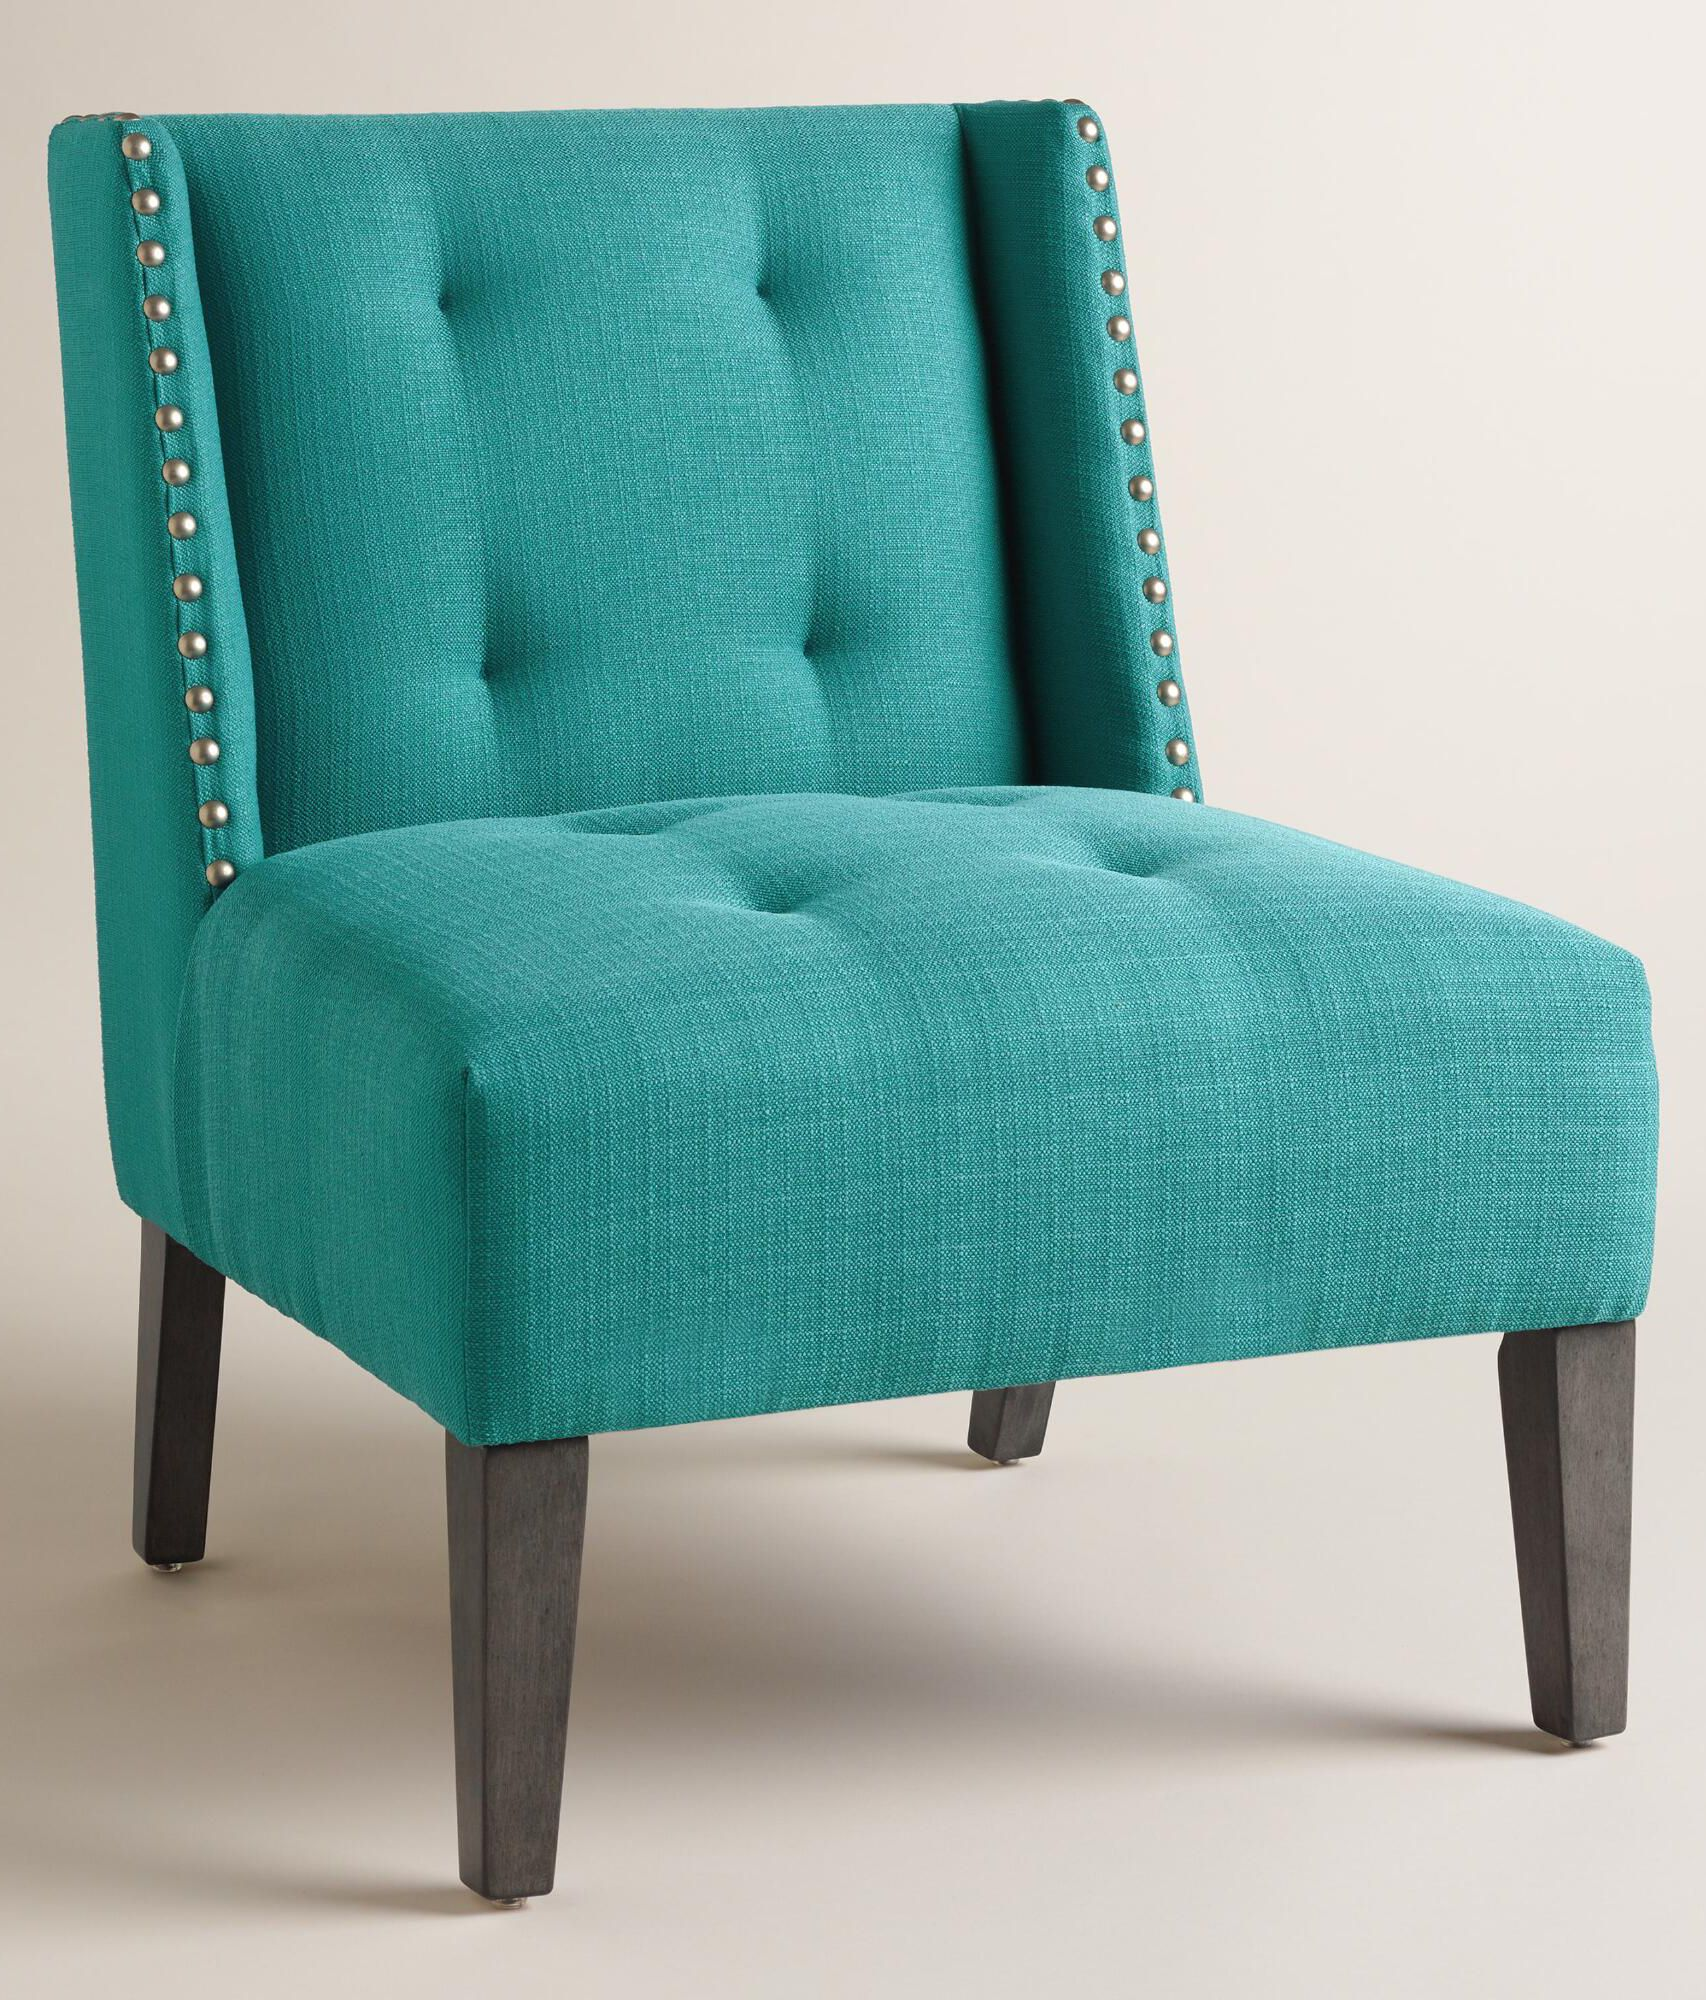 Teal Wingback Chair Peacock Blue Carlin Wingback Chair Fabulous Furniture Chair